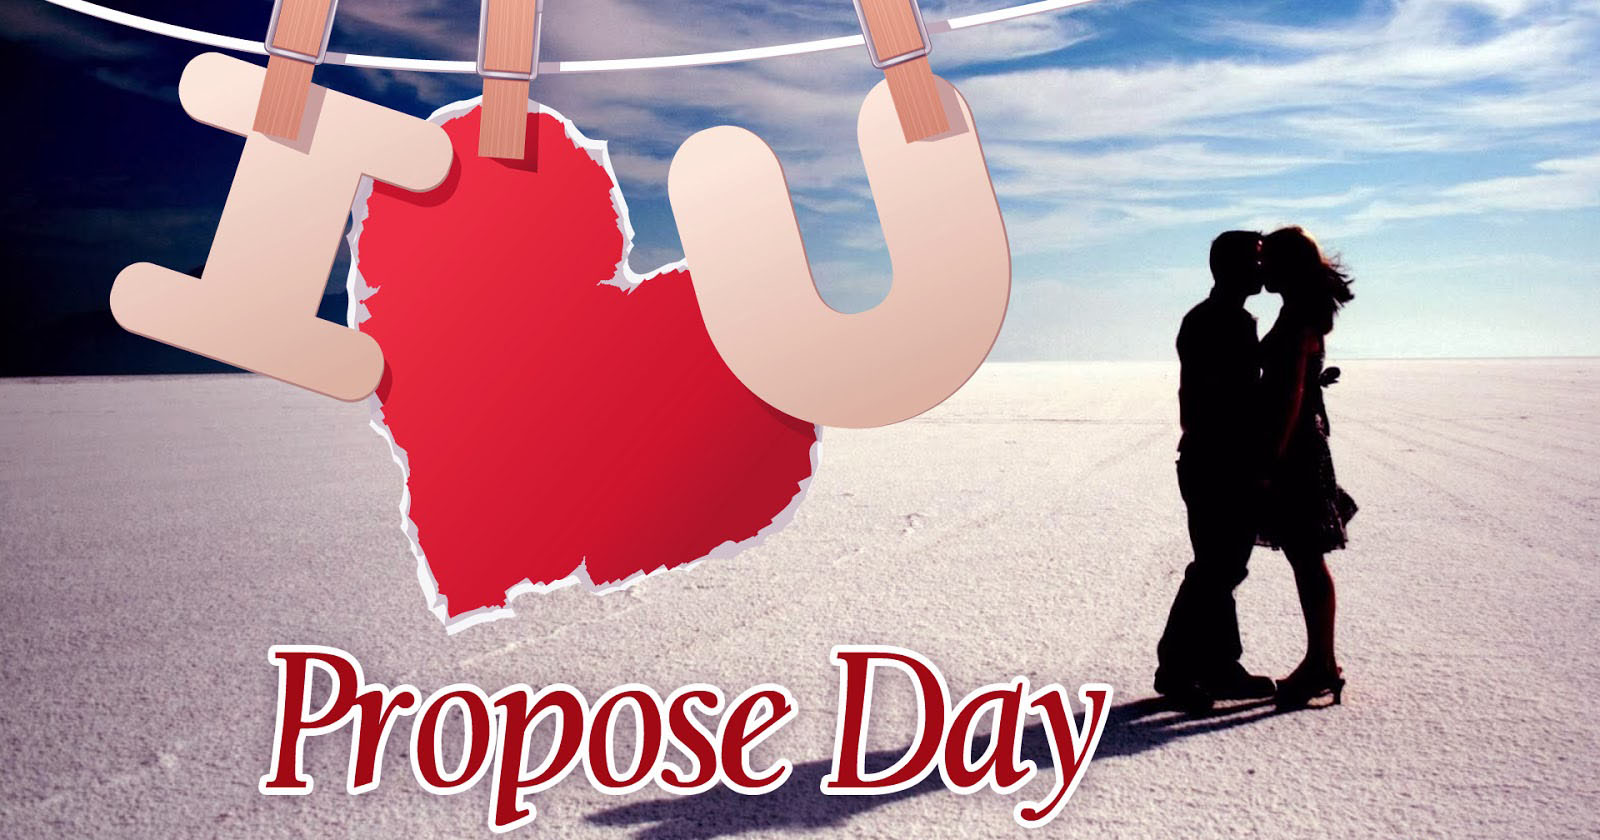 happy-propose-day-wallpaper